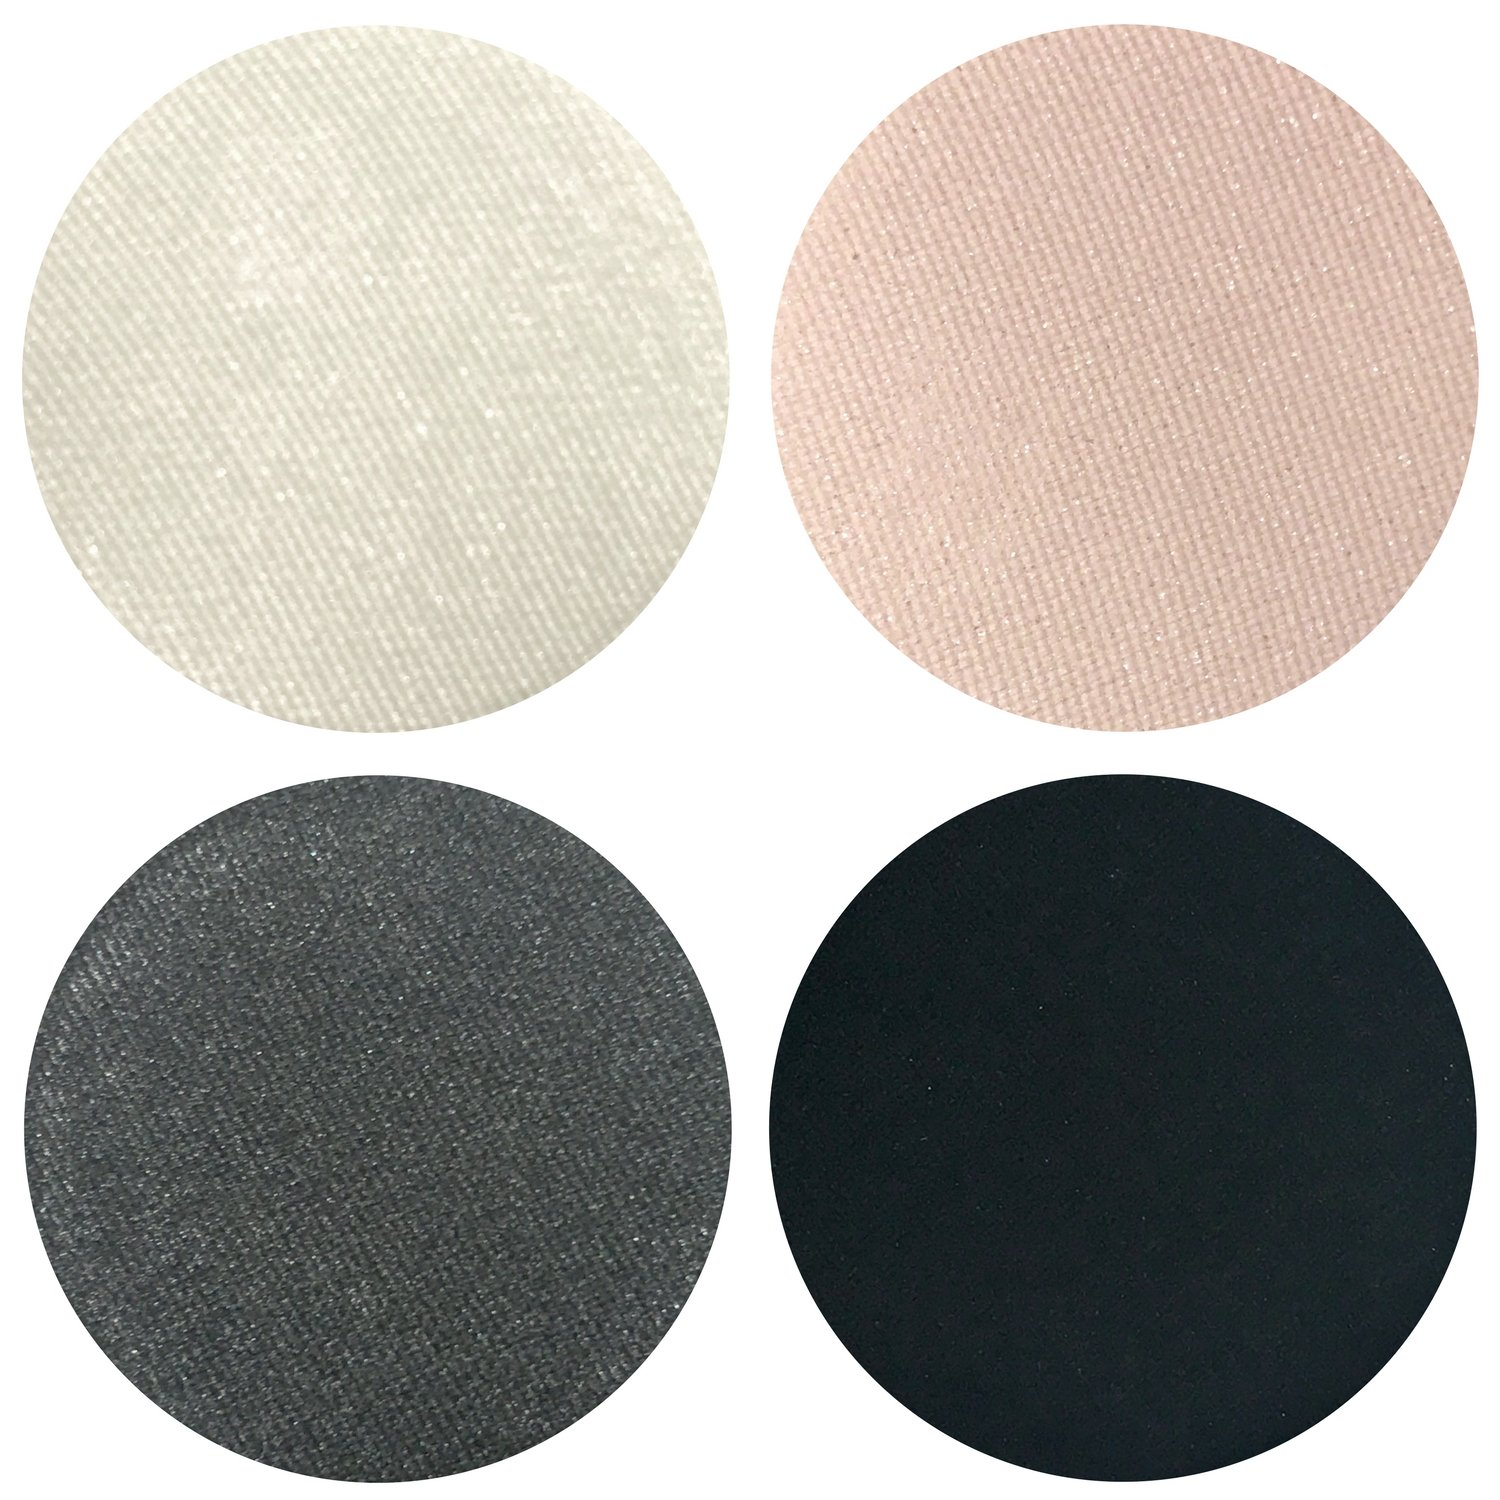 Smokey Night Collection Eyeshadow Quad: 4 Single Eye Shadows Makeup Magnetic Refill Pan 26mm, Paraben Free, Gluten Free, Made in the USA